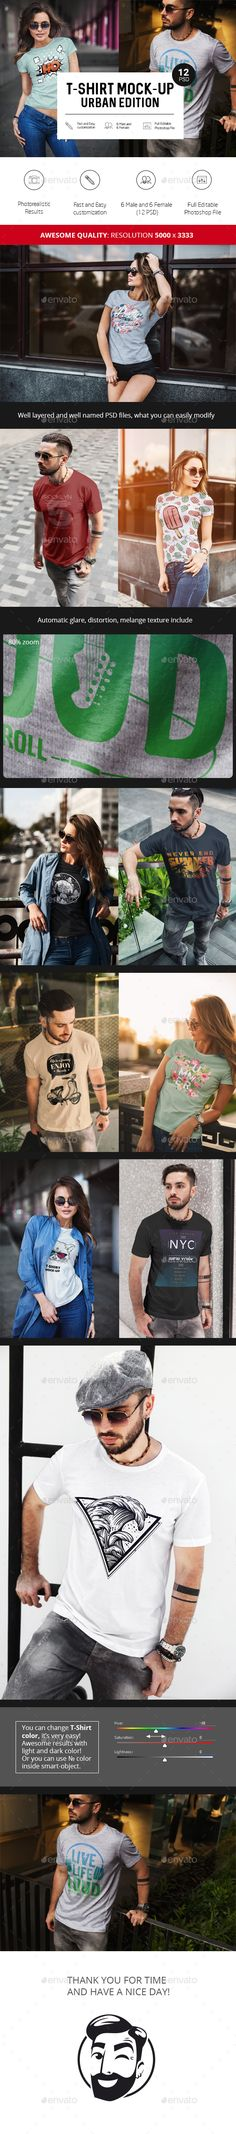 T-Shirt Mock-Up Urban Edition - Realistic look and guarantees the a good look for bright and dark designs and perfect fit to the shape of the t-shirt